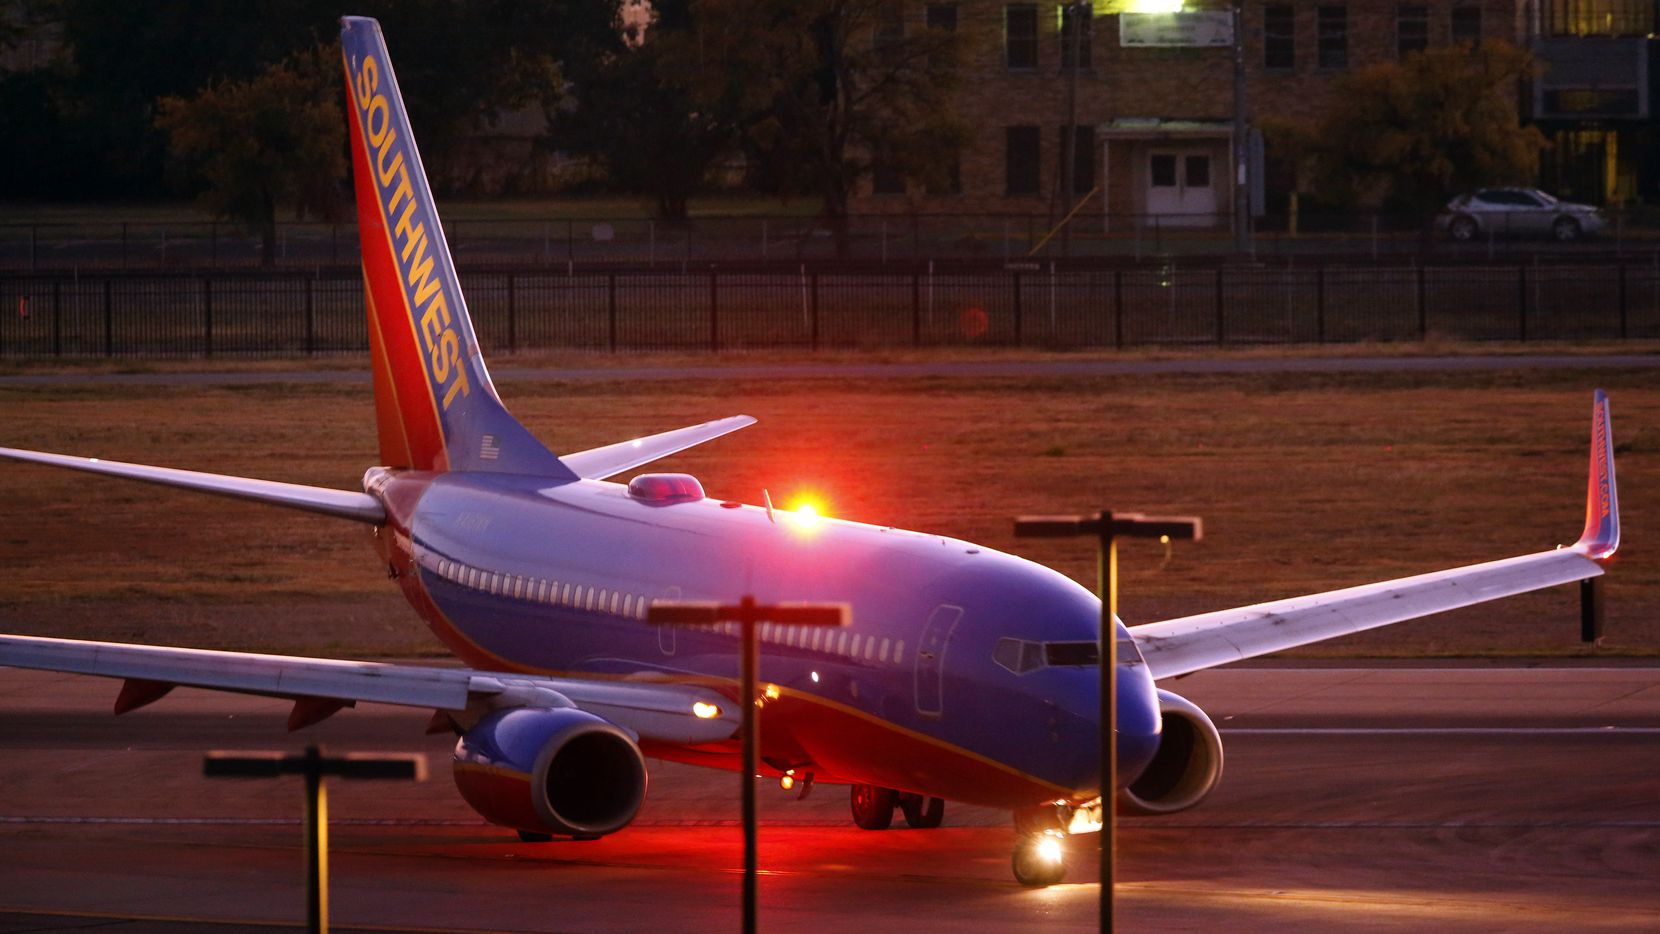 A Southwest Airlines jet taxis to the terminal at Dallas Love Field on Oct. 17, 2019.